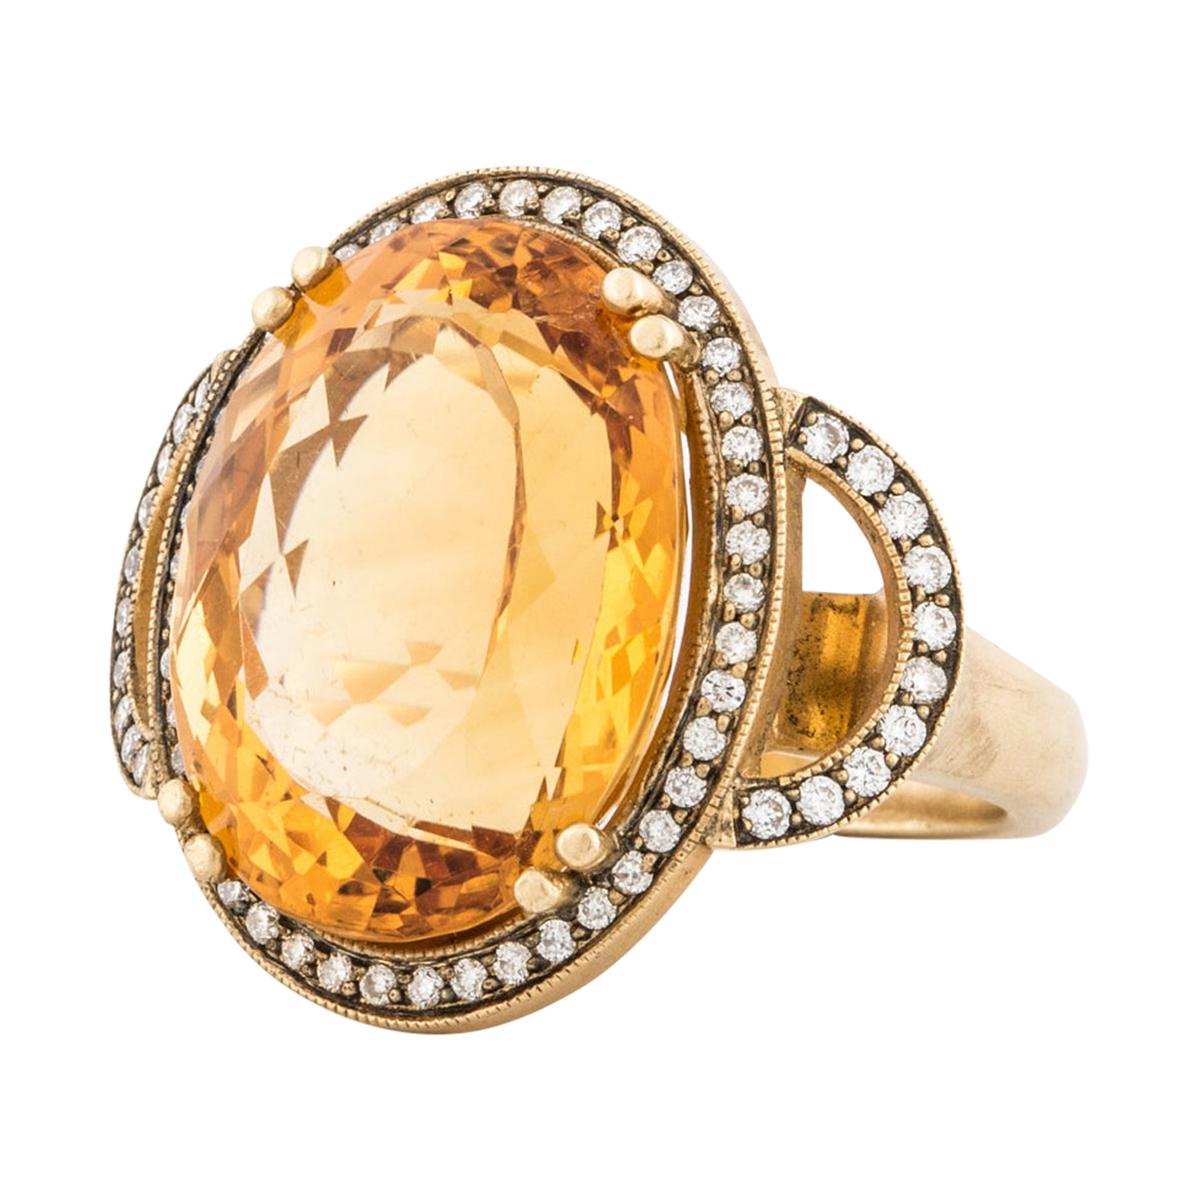 Oval Citrine and Diamond Ring in 18K Gold